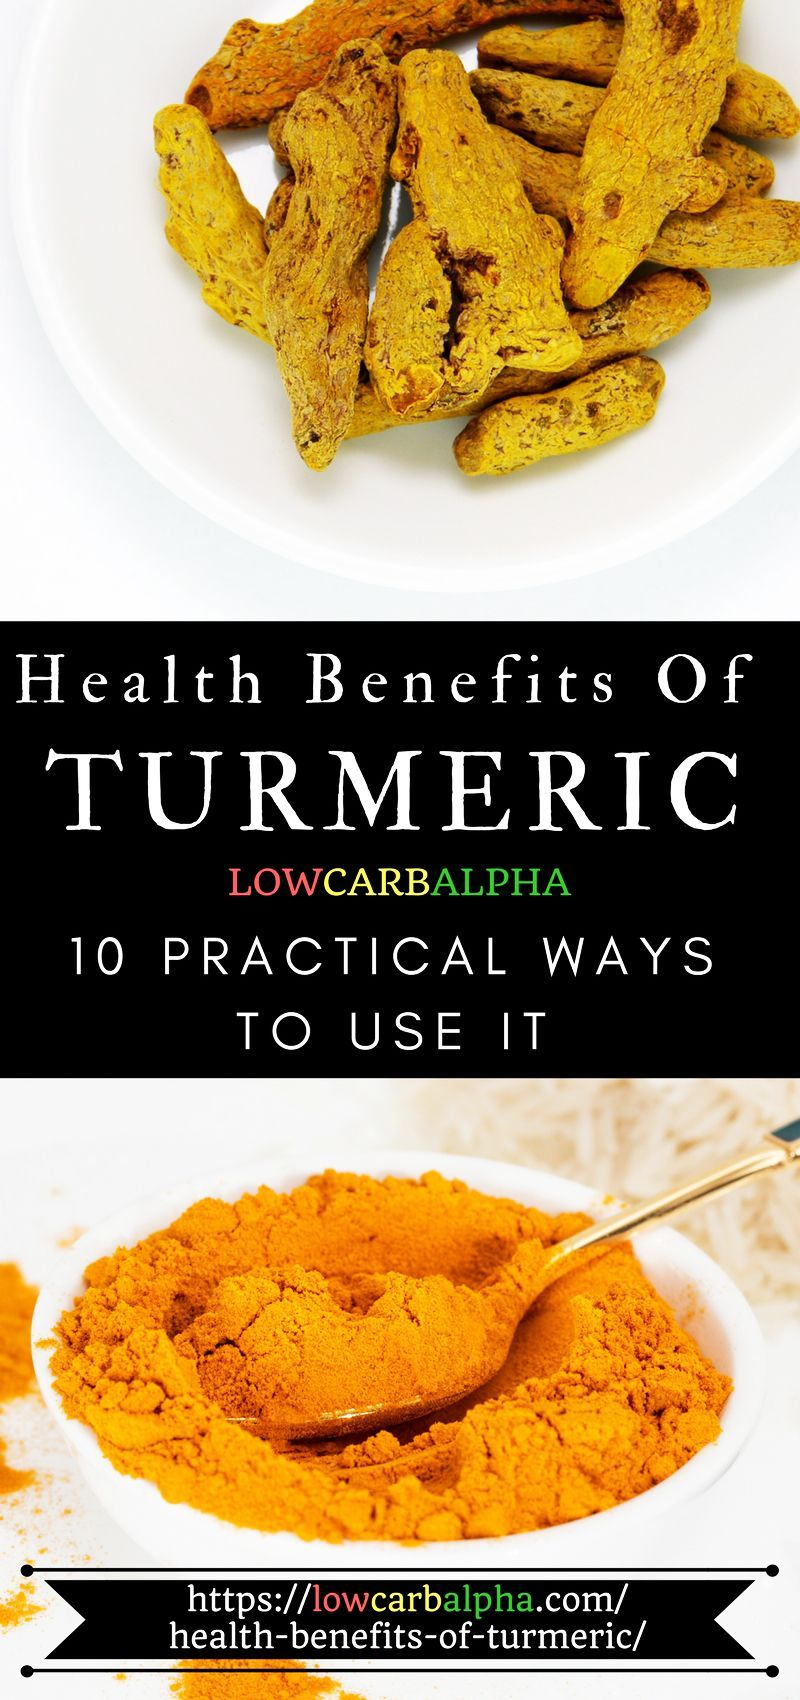 The Health Benefits Of Turmeric Spice Https Lowcarbalpha Com Health Benefits Of Turmeric Turmeric Benefits Turmeric Health Benefits Nutrition Healthy Eating